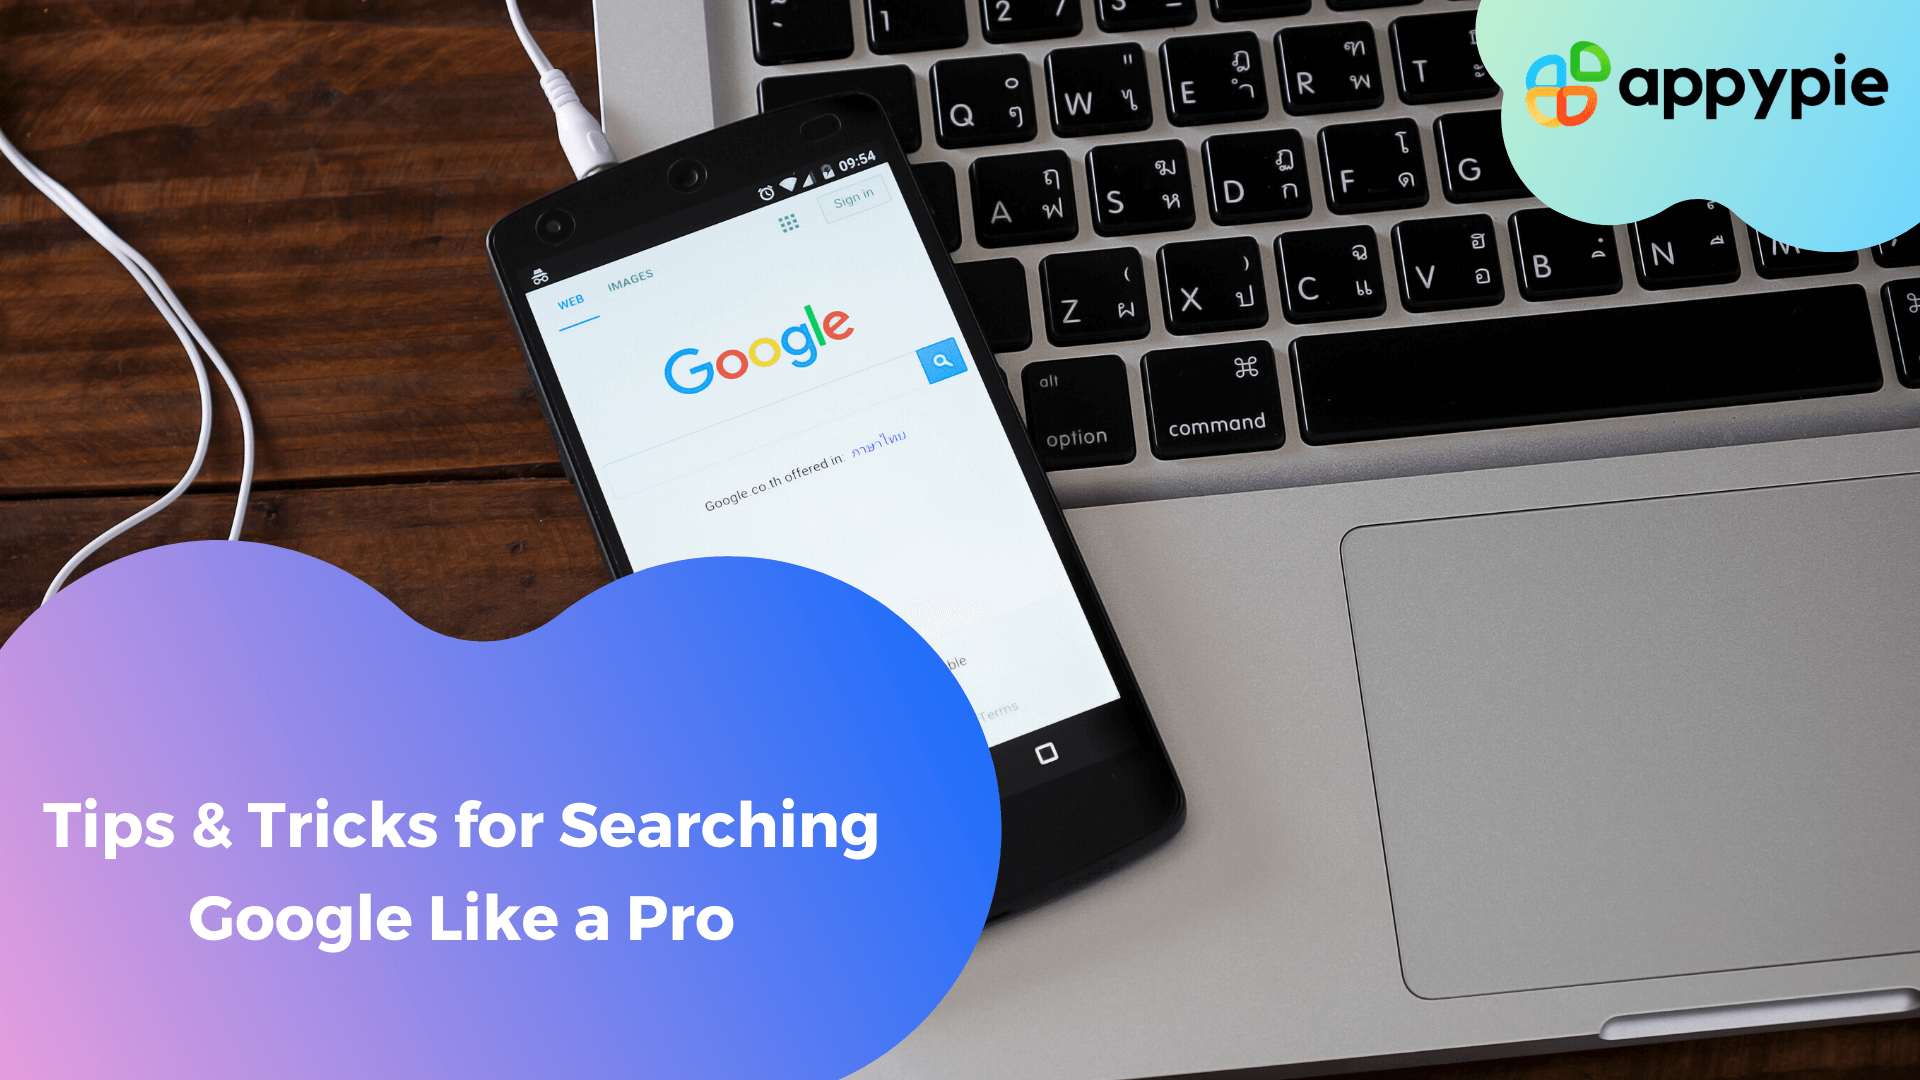 Tips & Tricks for Searching Google Like a Pro - Appy Pie